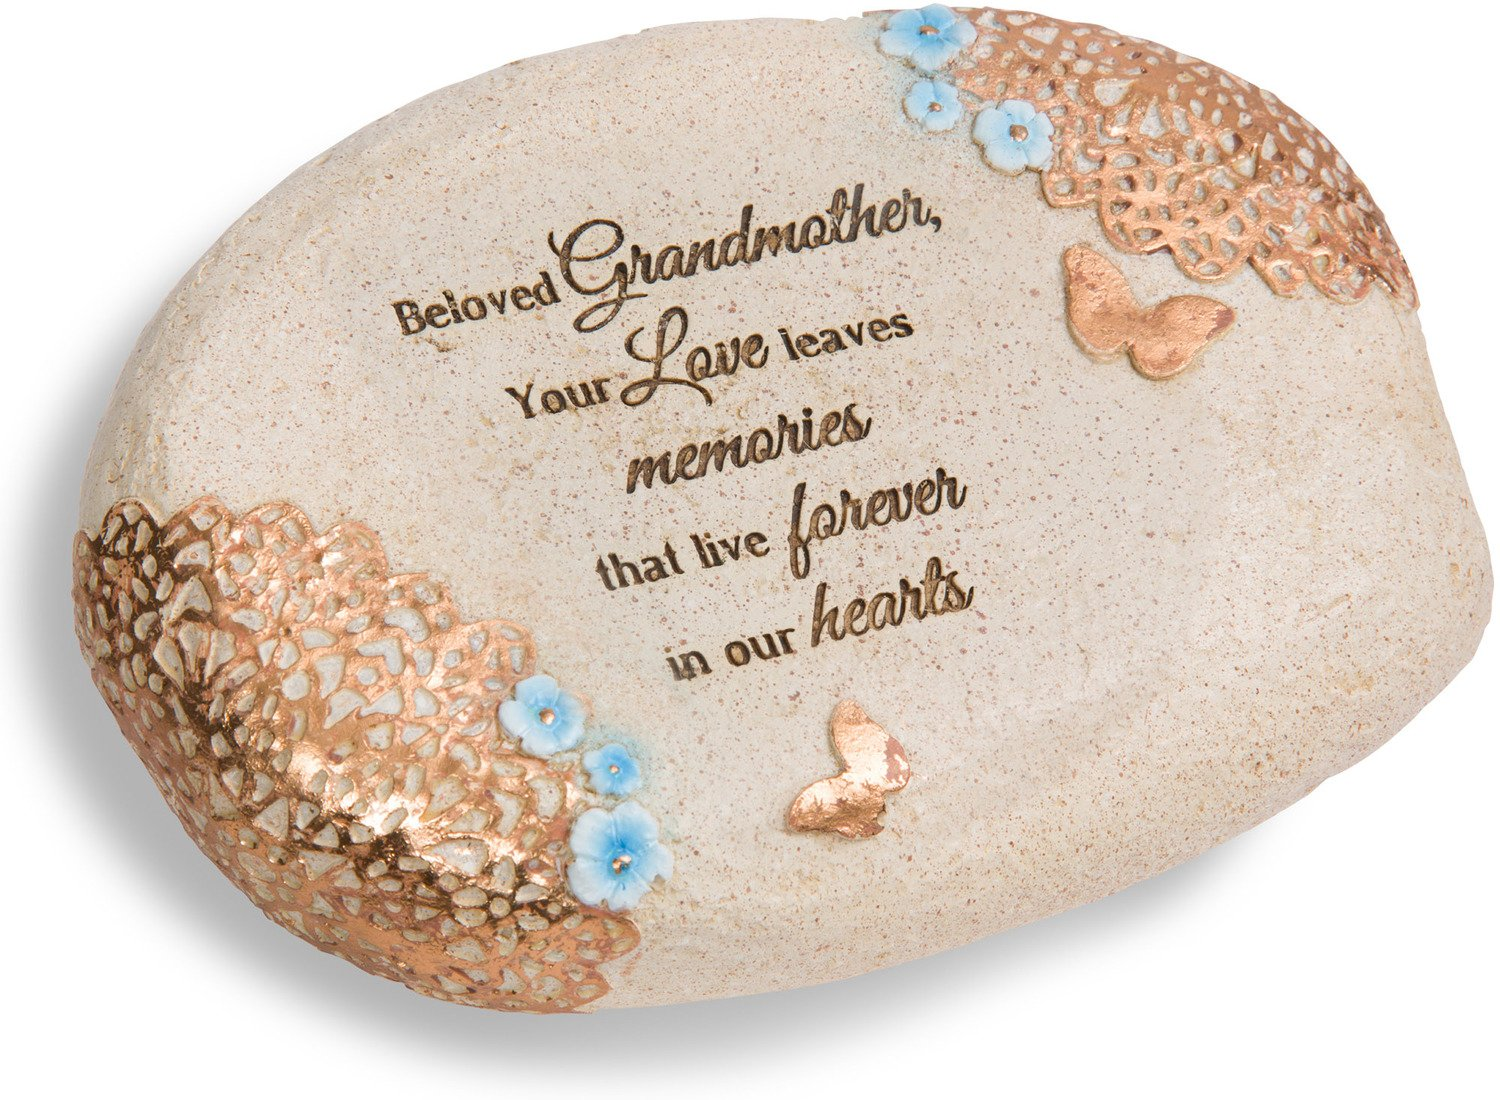 Pavilion Gift Company 19139 Light Your Way Beloved Grandmother Memorial Stone, 6 x 2-1/2''